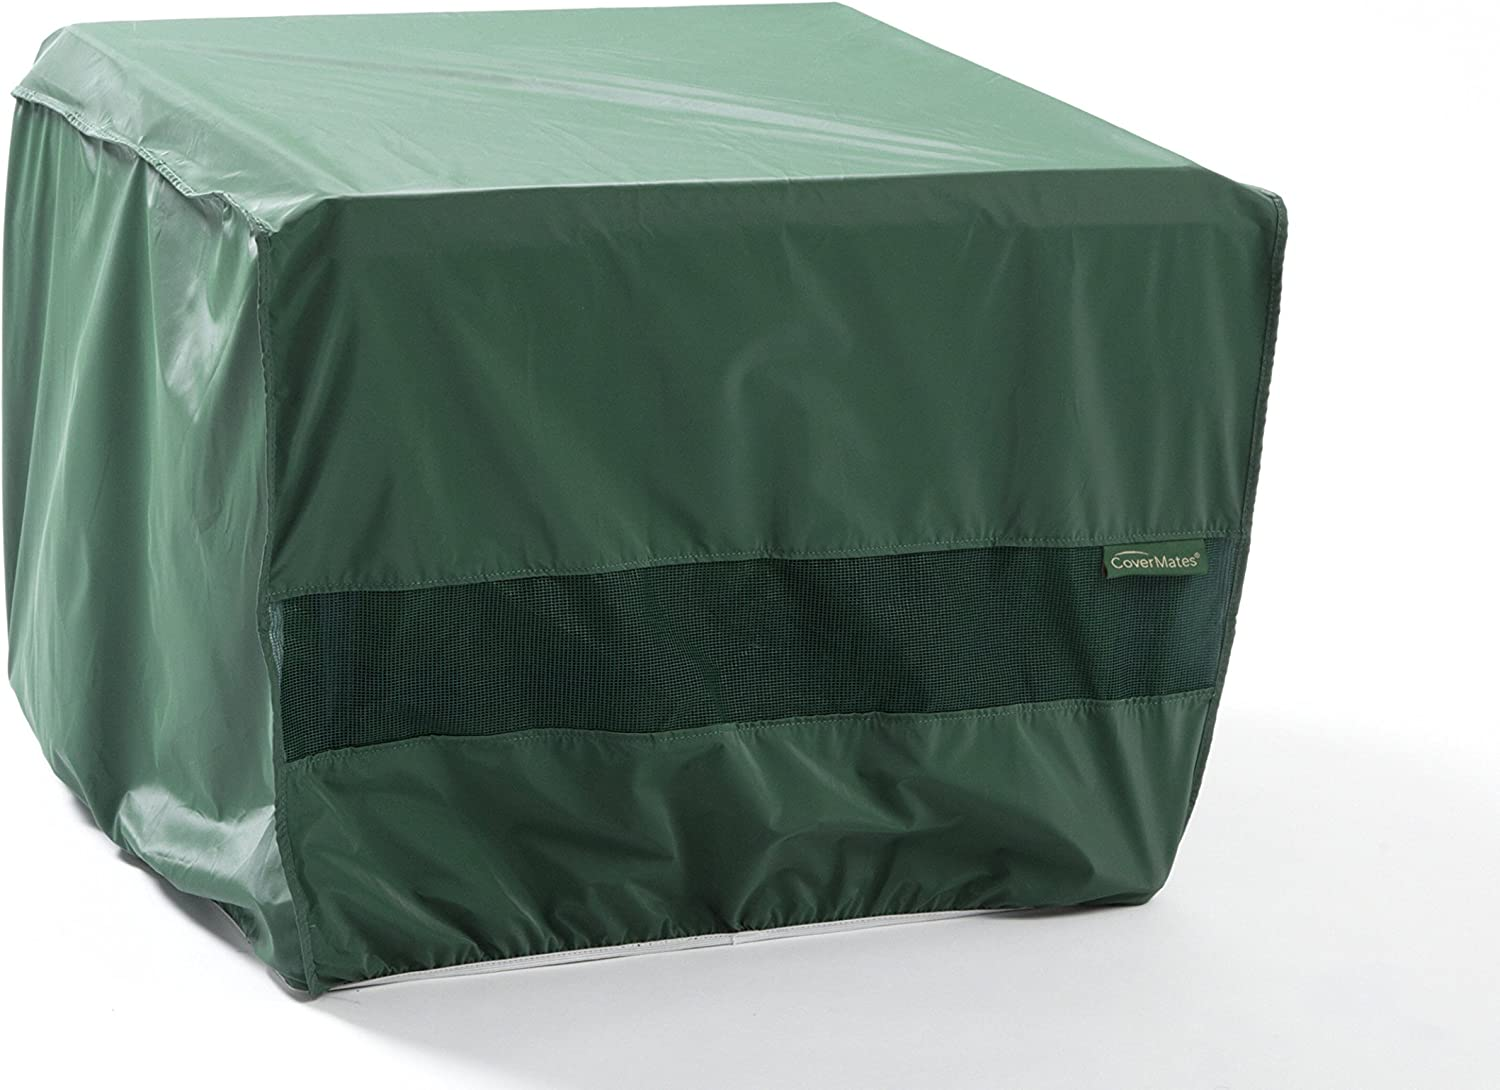 Covermates Square Dining Table Cover – 34W x 34D x 30H Classic 12-Gauge Vinyl Polyester Lining Elastic Hem for Secure Fit 2 YR Warranty Weather Resistant – Green